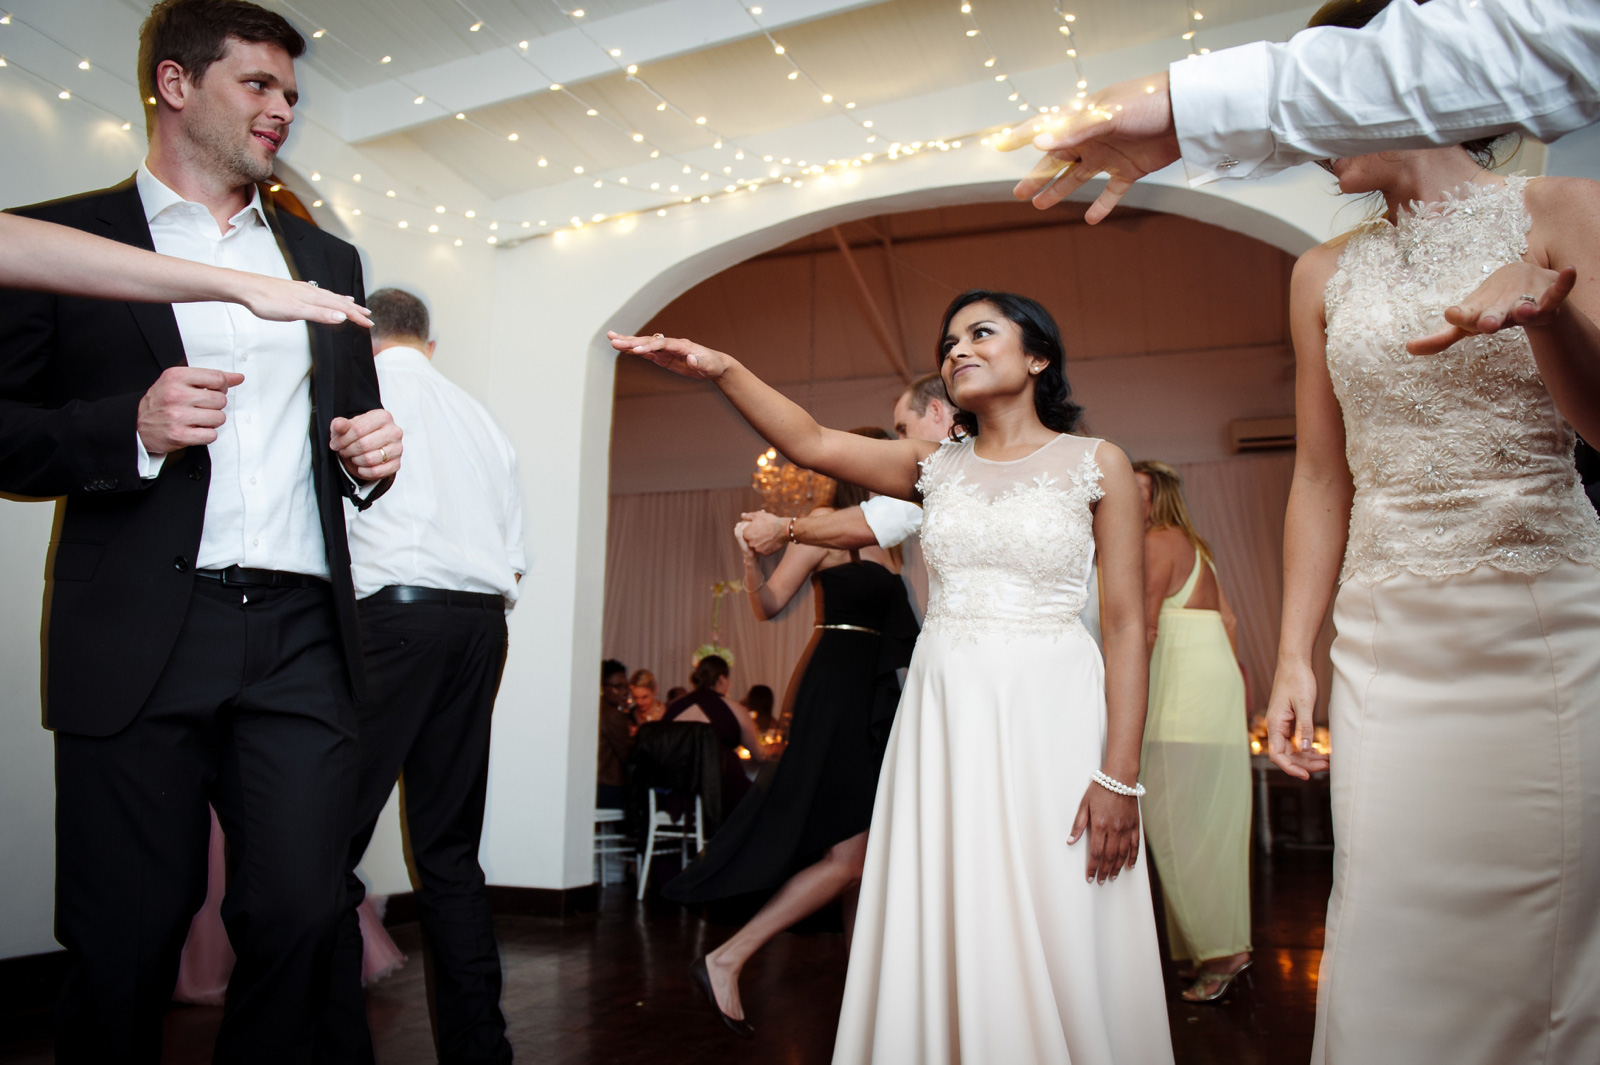 Bridal party on dance floor